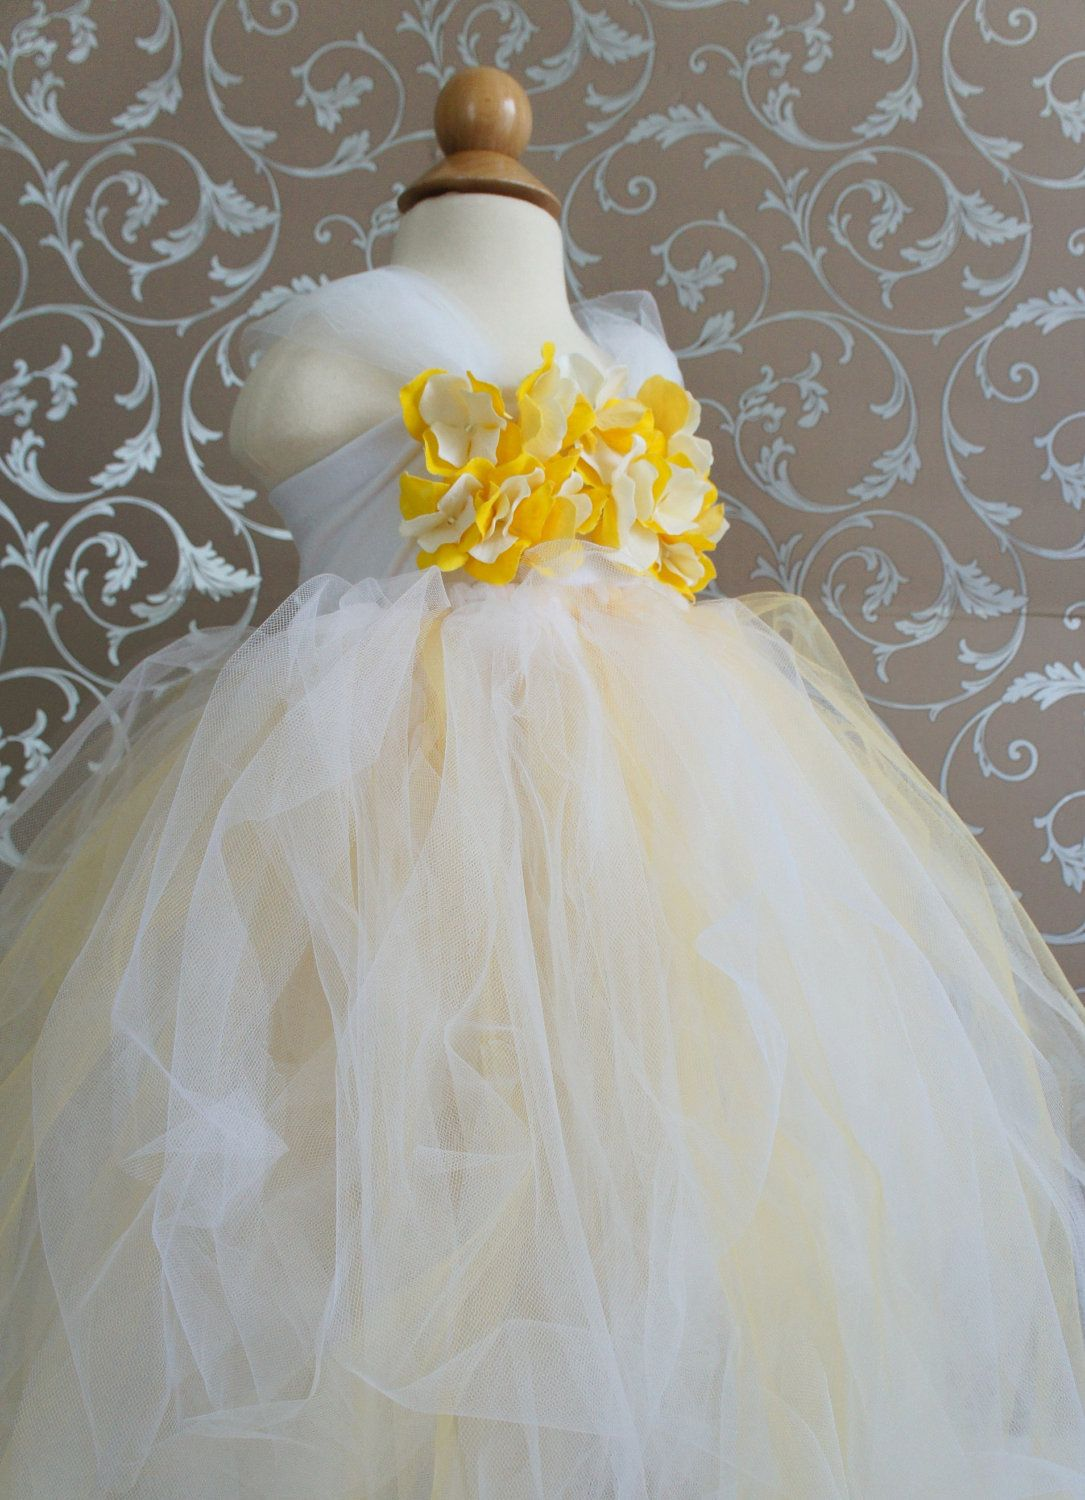 Gorgeous Flower Girl Tutu Dress Photo Prop In Ivory And Yellow